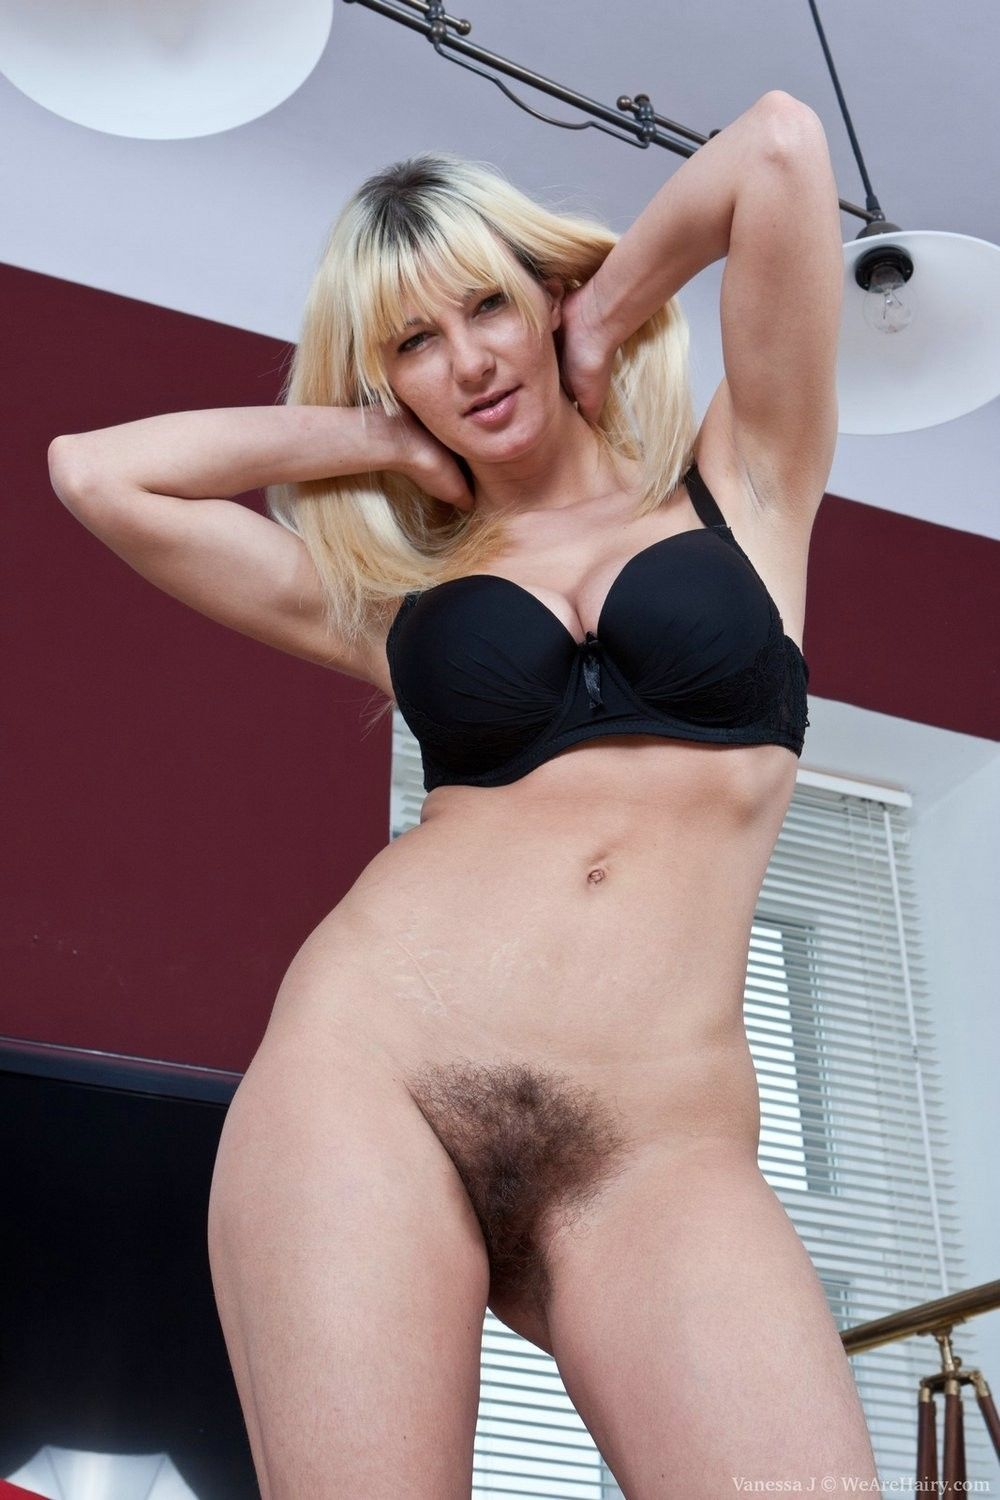 Vanessa j loves to show her incredibly hairy body